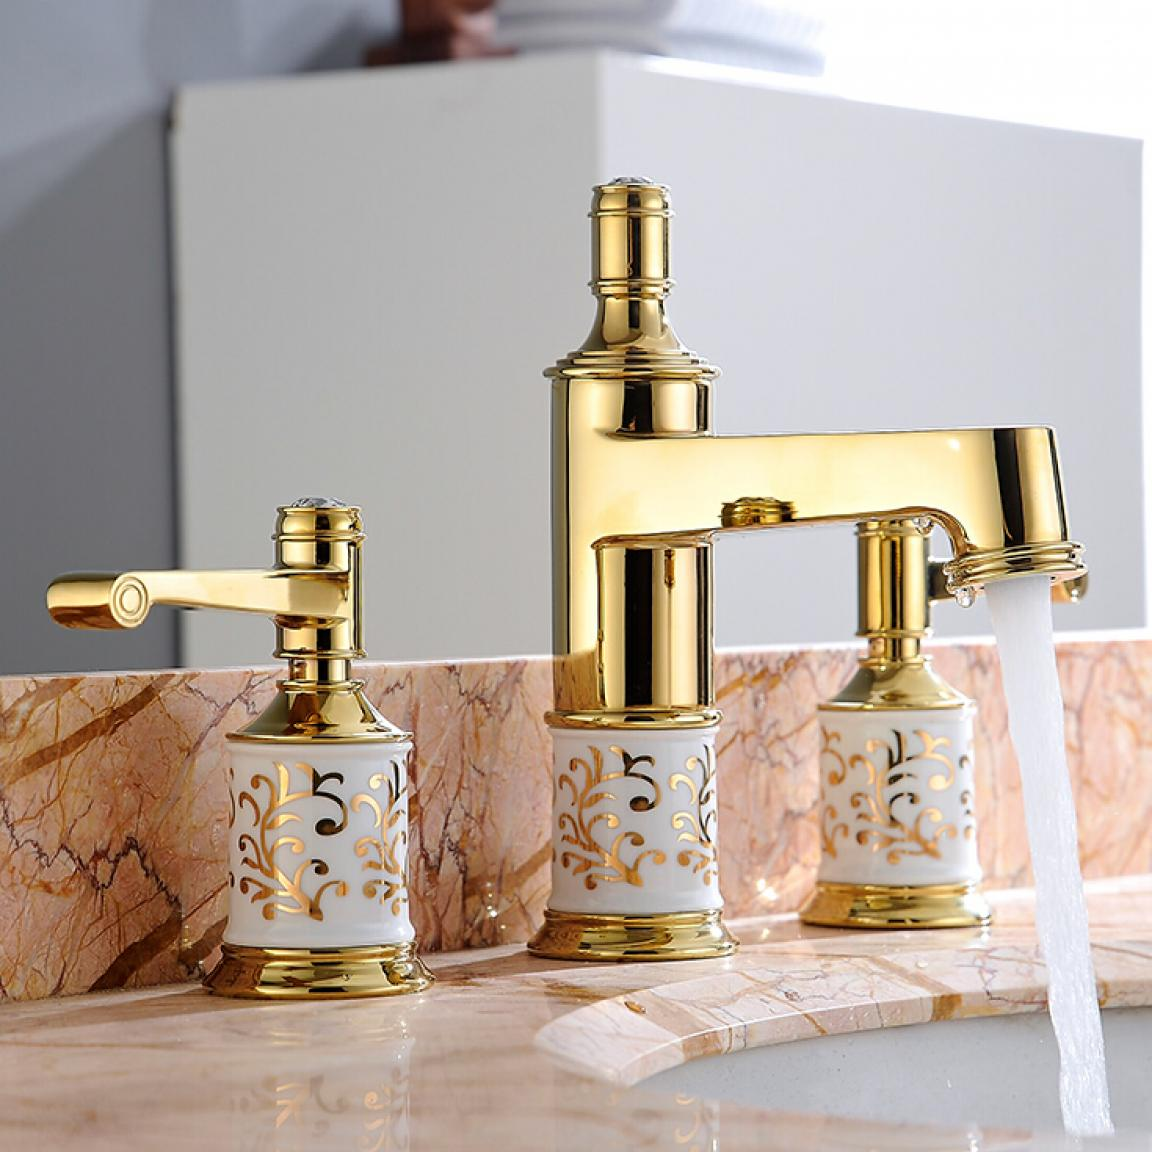 elegant-gold-vessel-sink-faucets-design